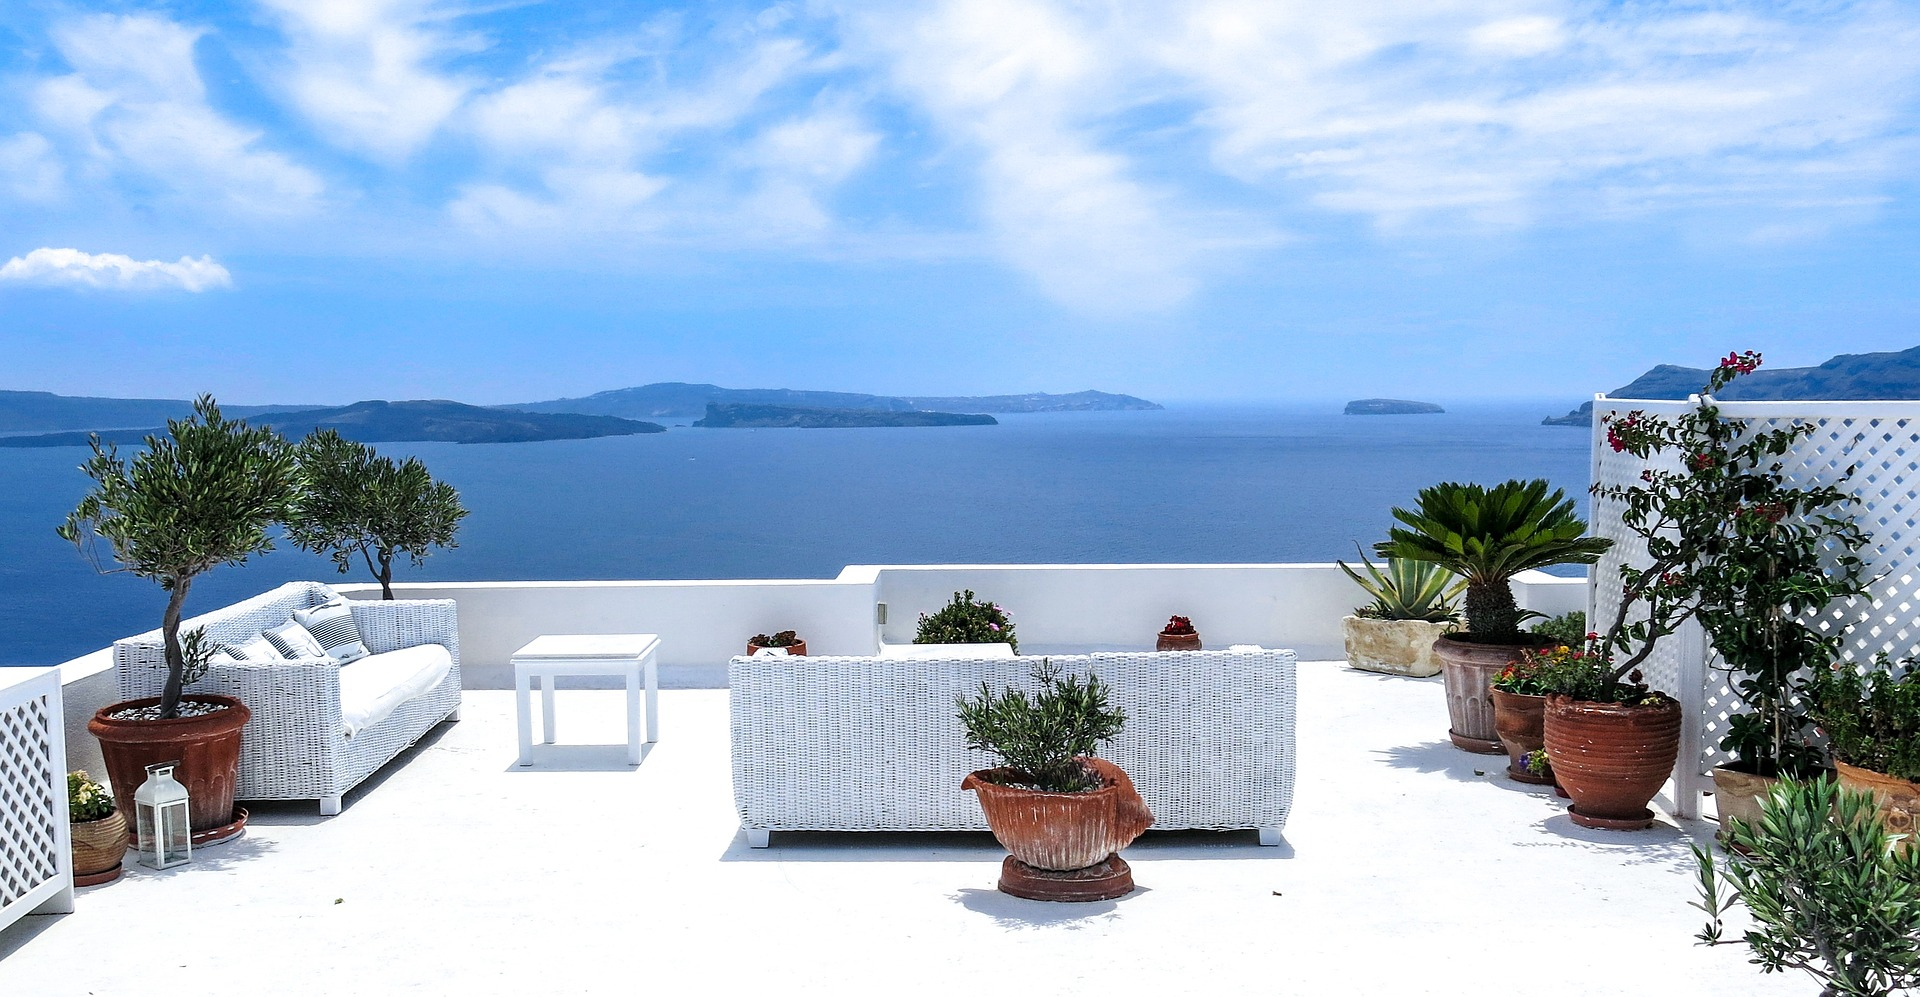 5 reasons to choose an HOLIDAY HOME instead of a Hotel